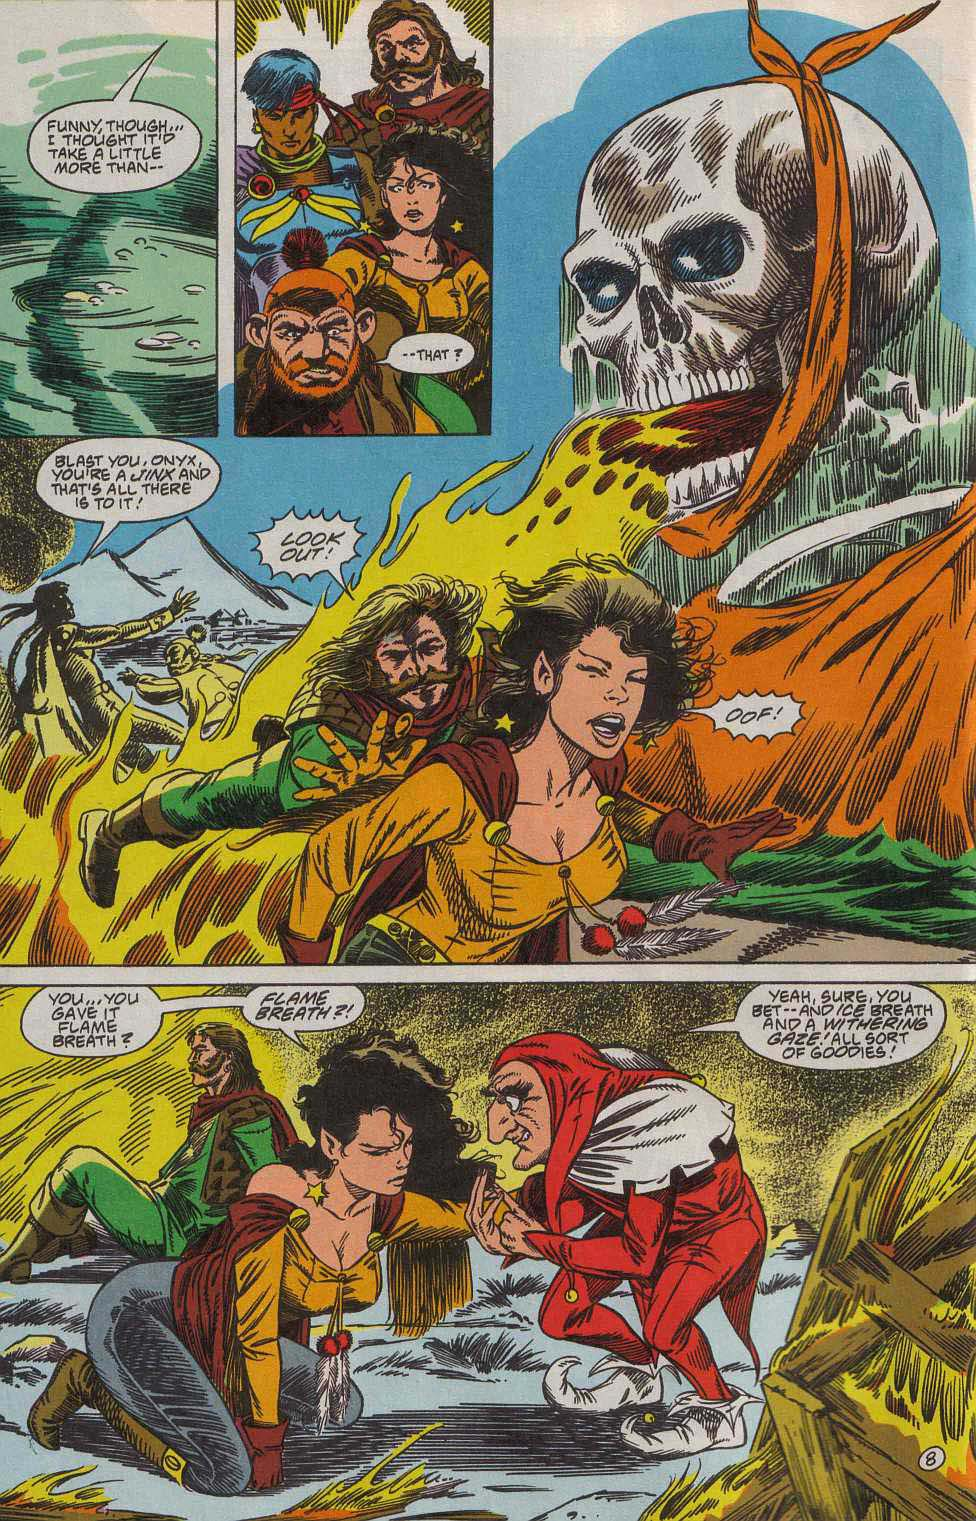 Read online Advanced Dungeons & Dragons comic -  Issue #7 - 9